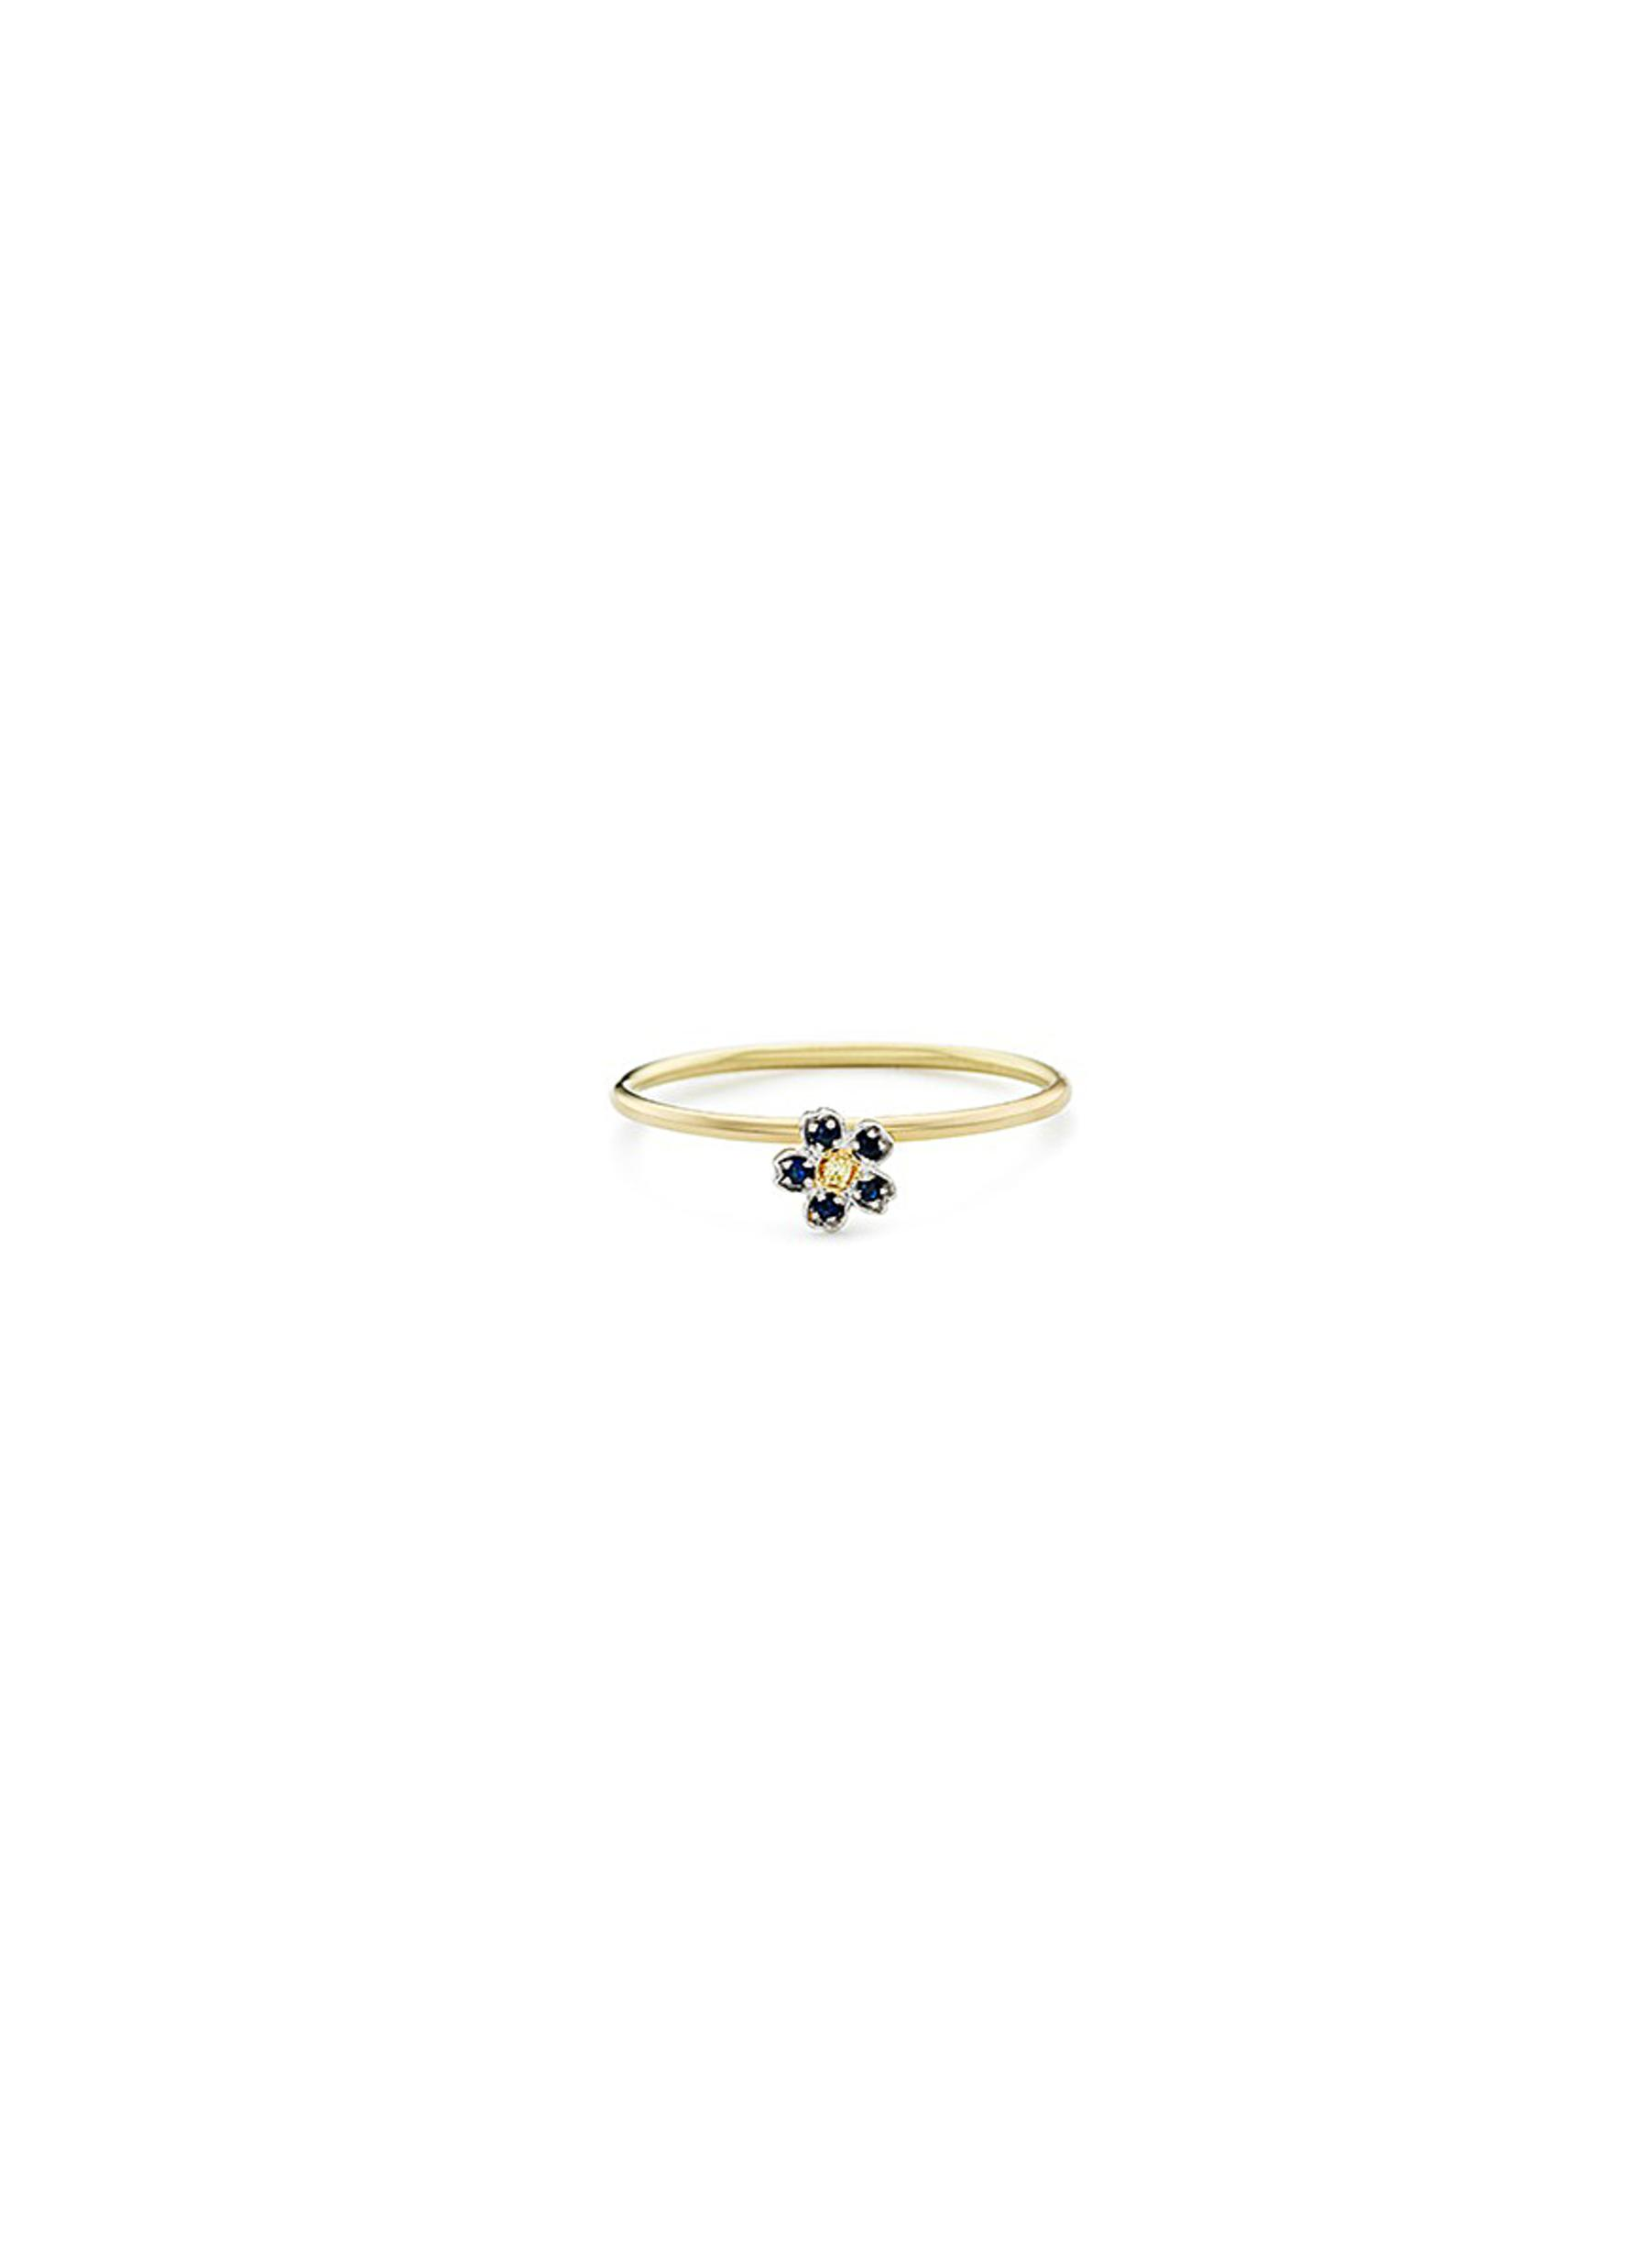 Diamond sapphire 18k yellow gold forget me not ring